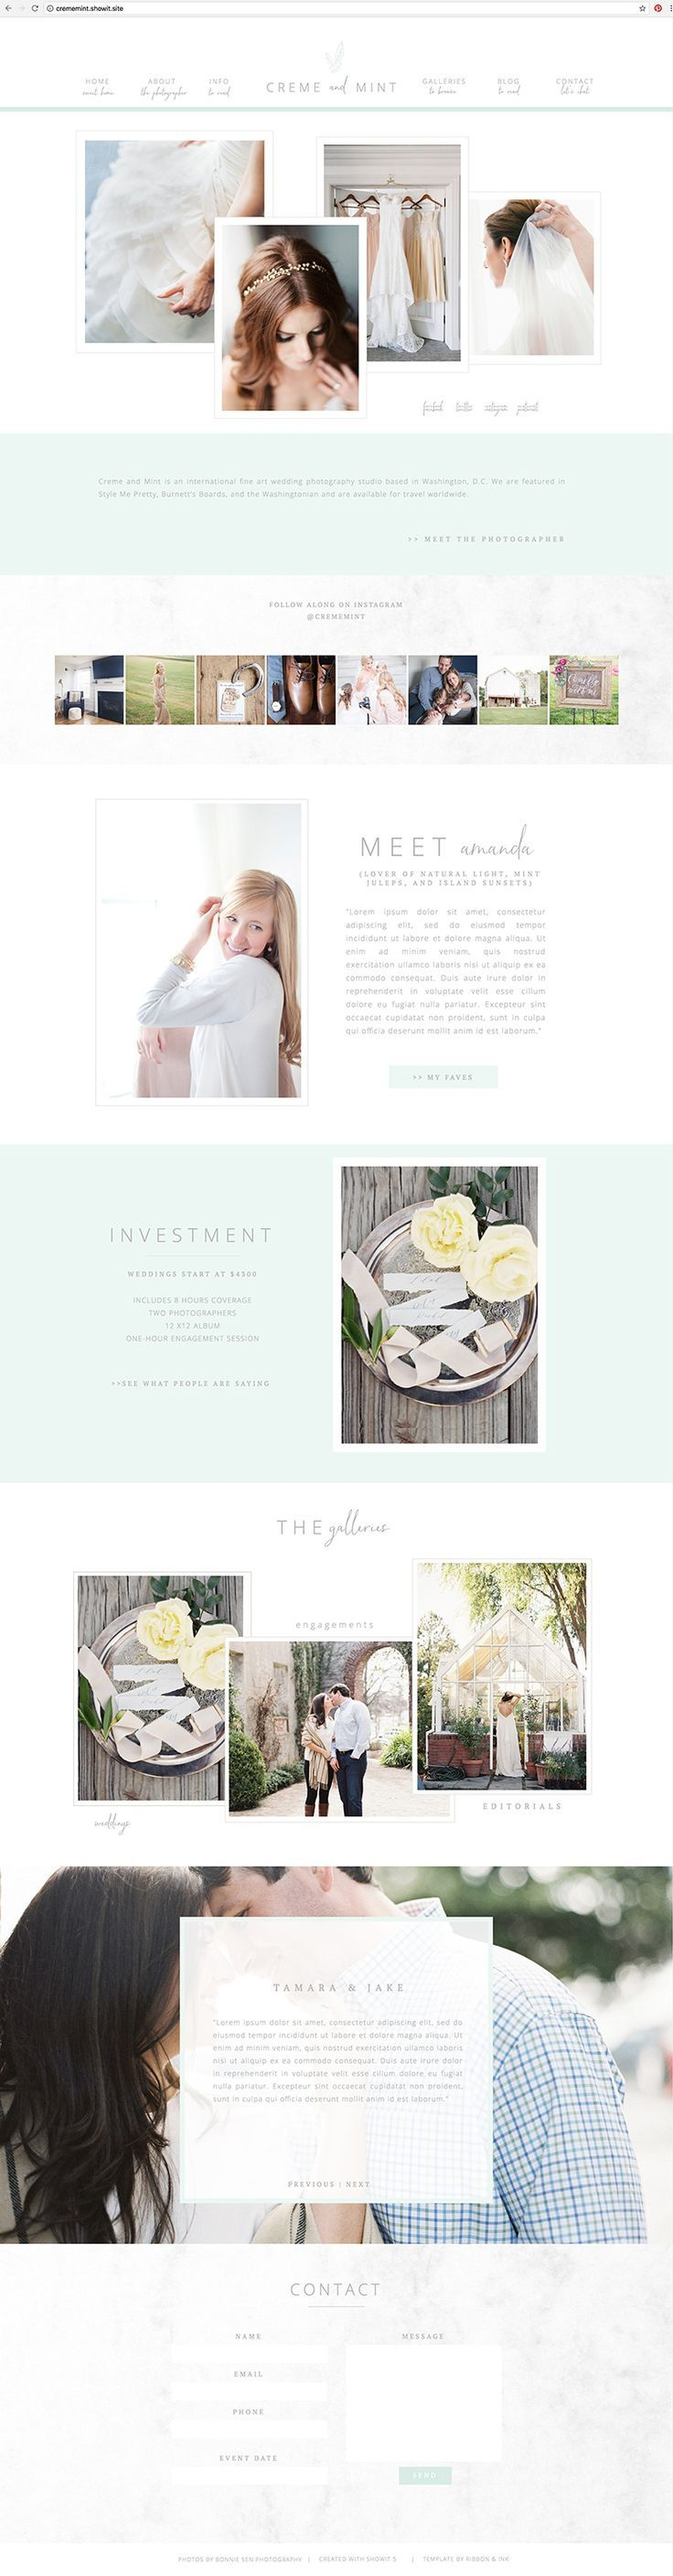 The 97 best Web Design for Photographers images on Pinterest ...